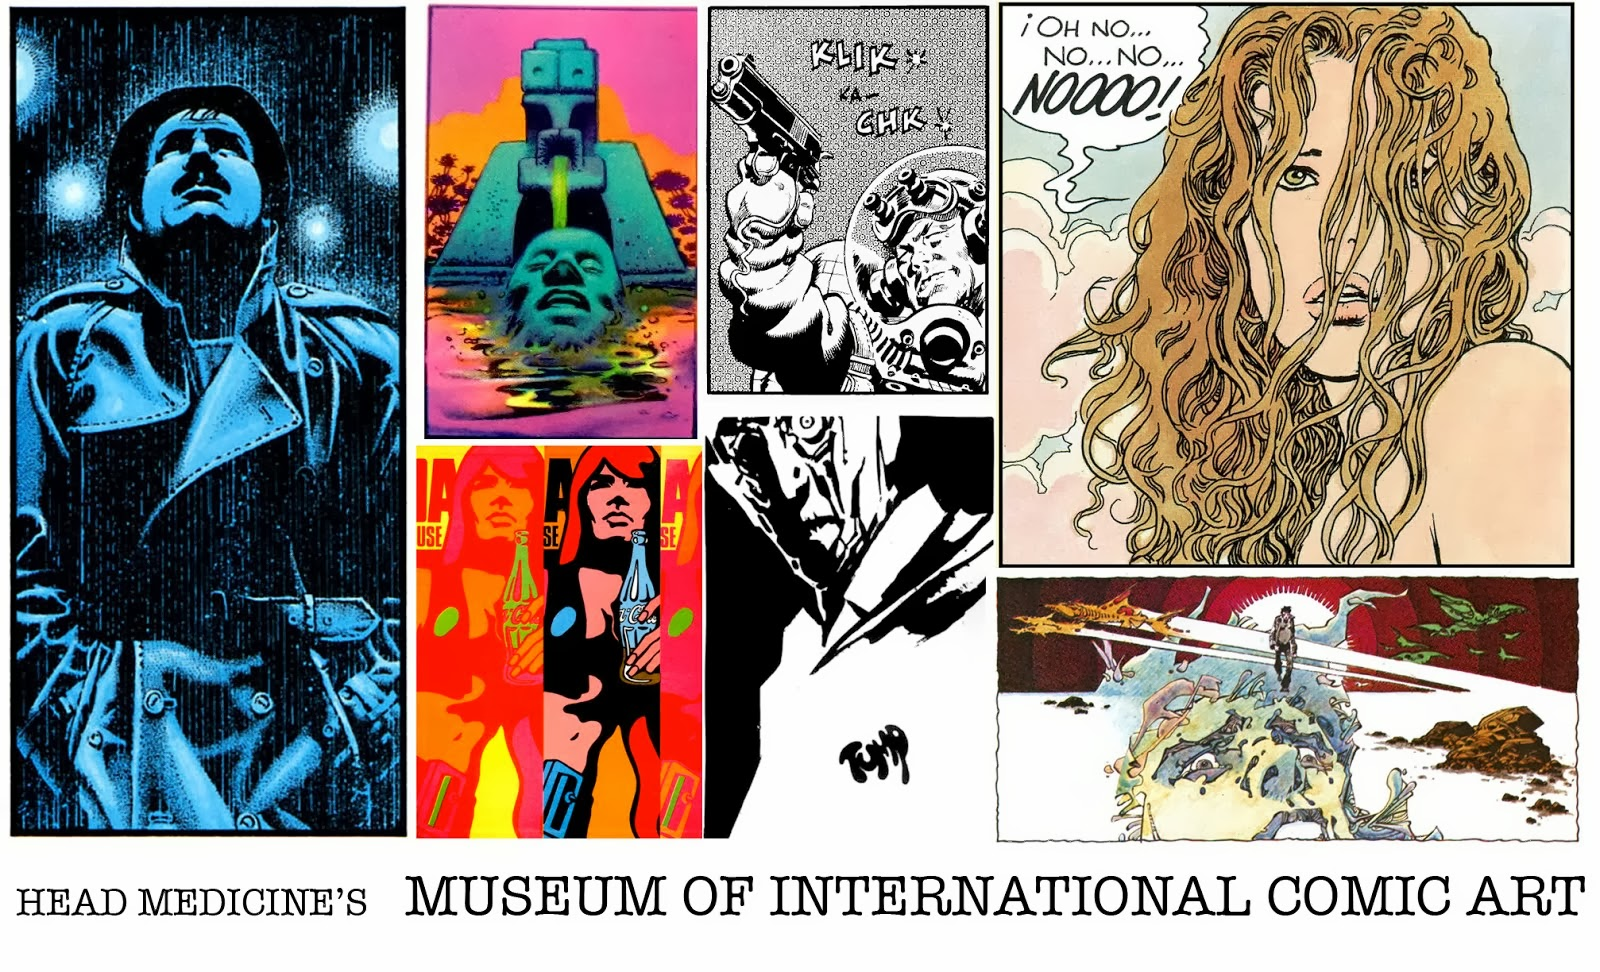 Head Medicine's Museum of International Comic Art